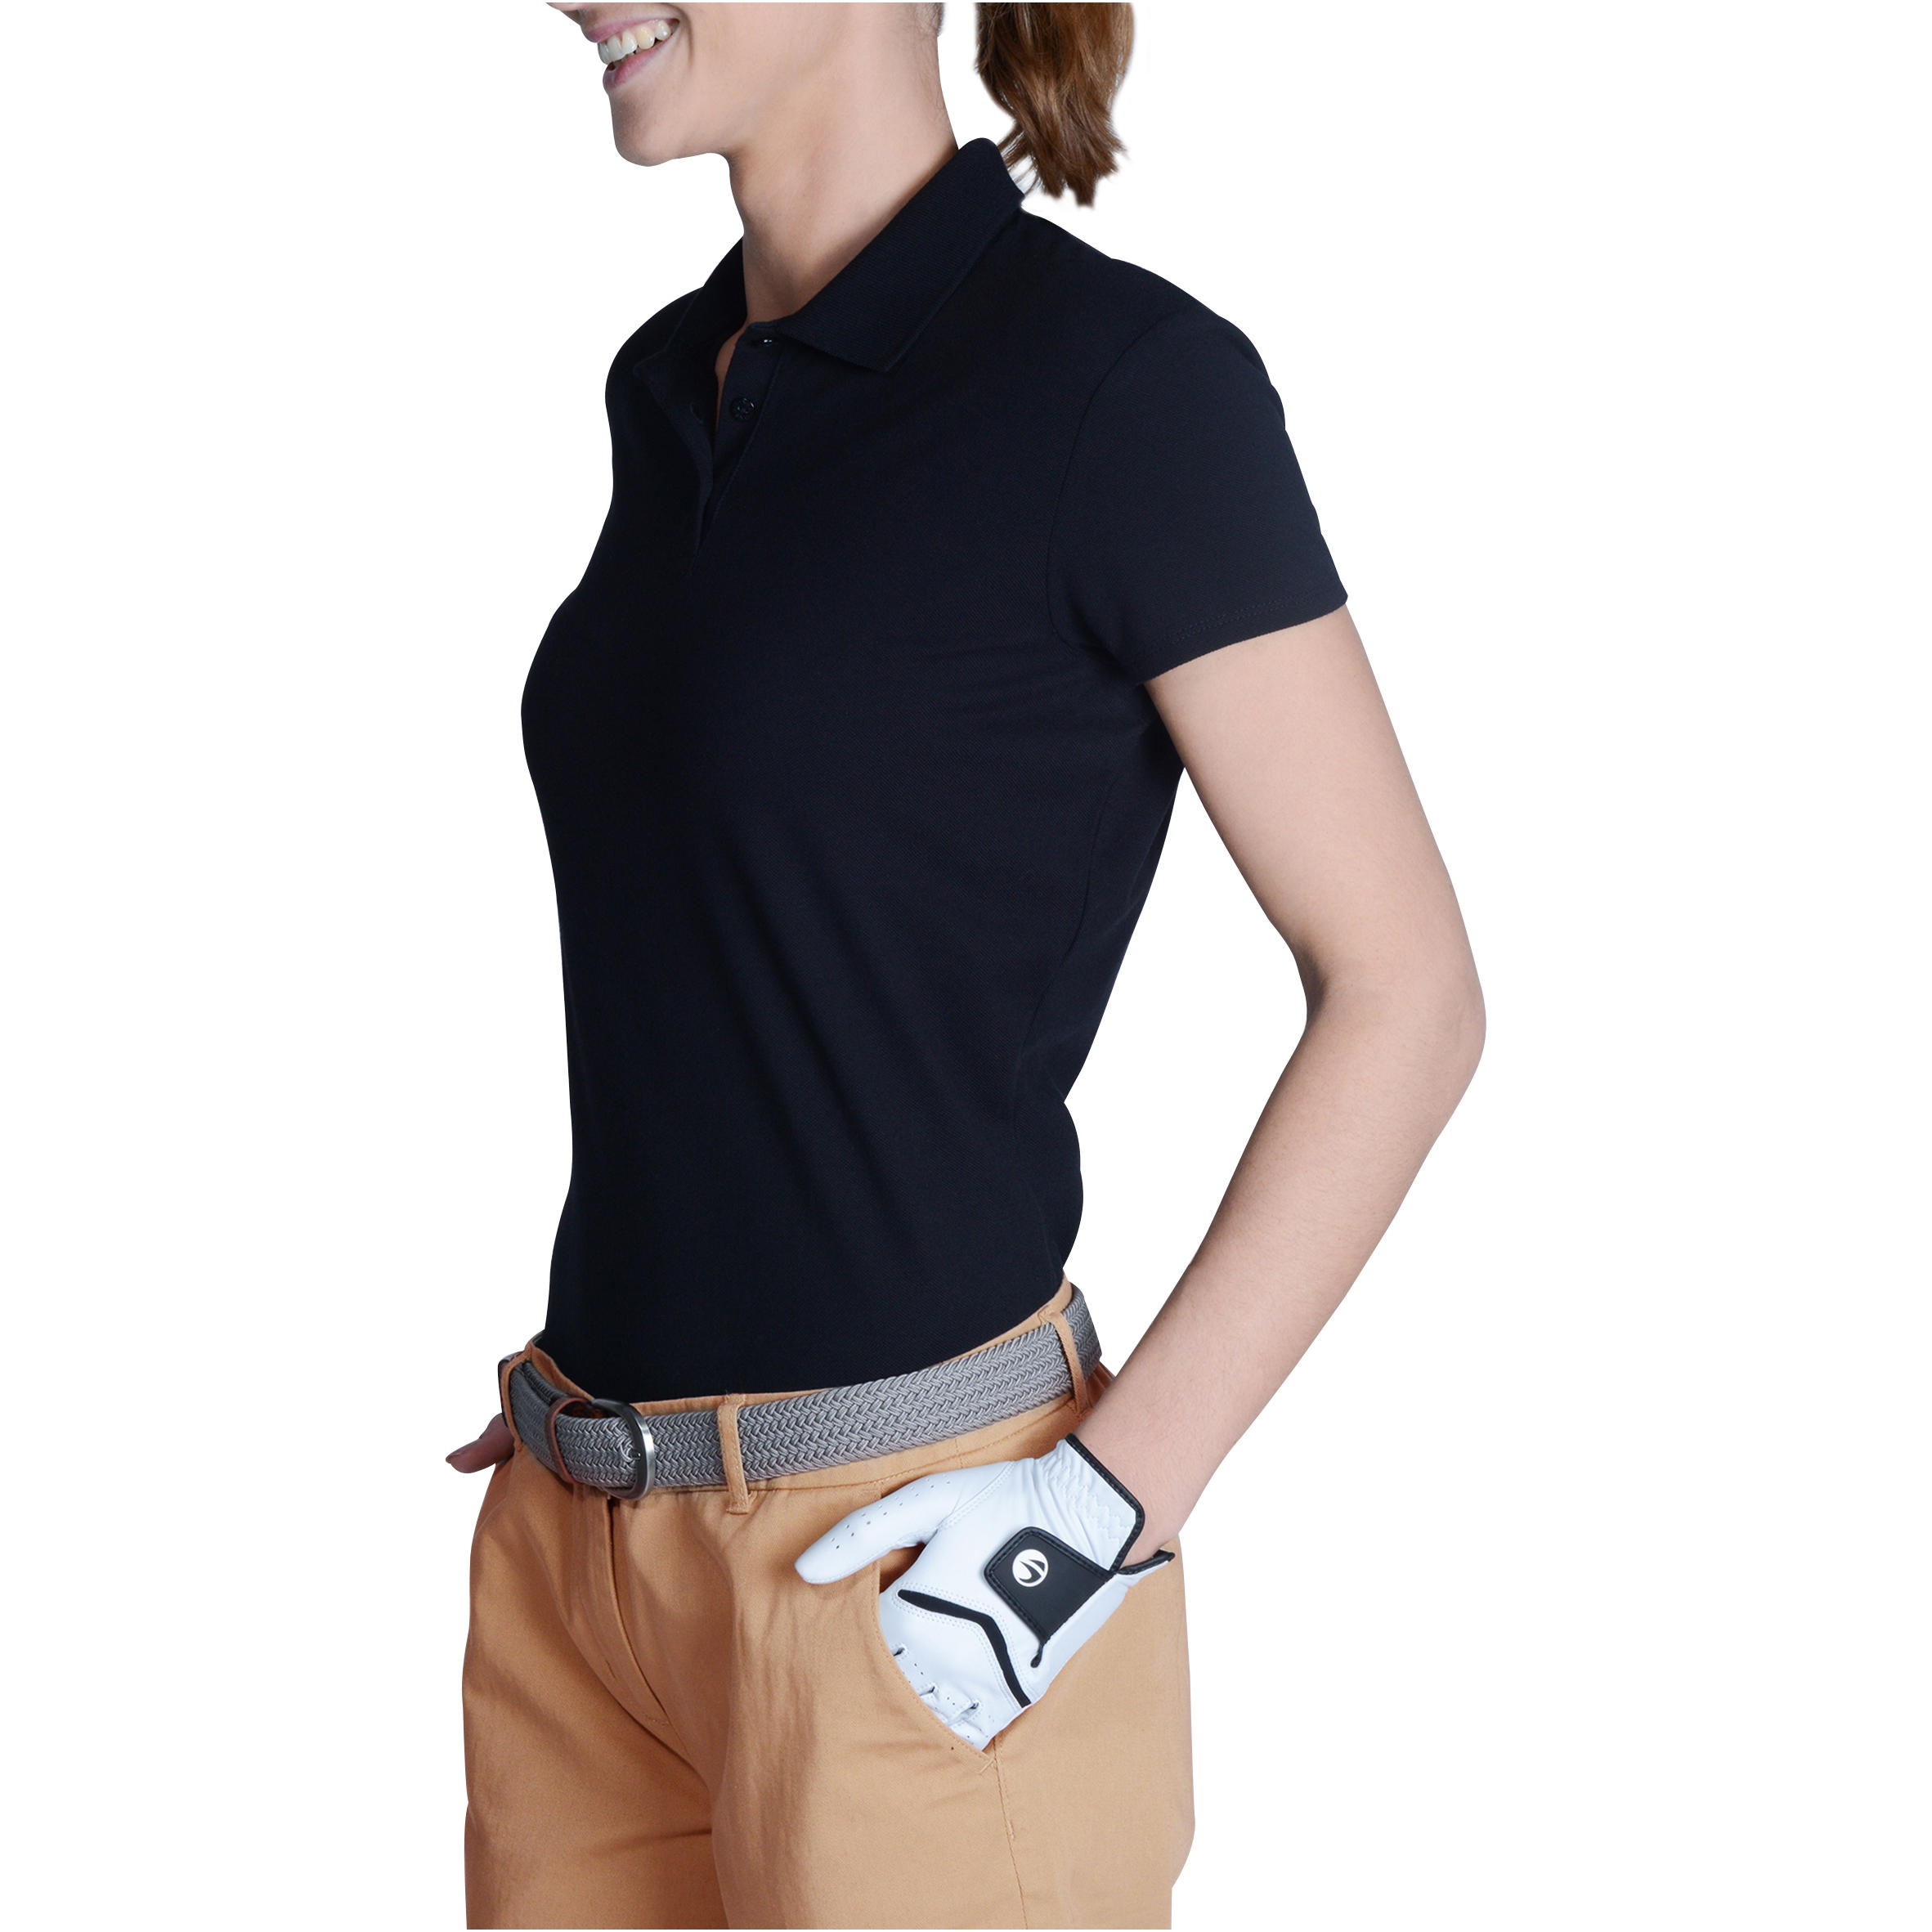 Women's Golf Polo T-Shirt 100 - Black